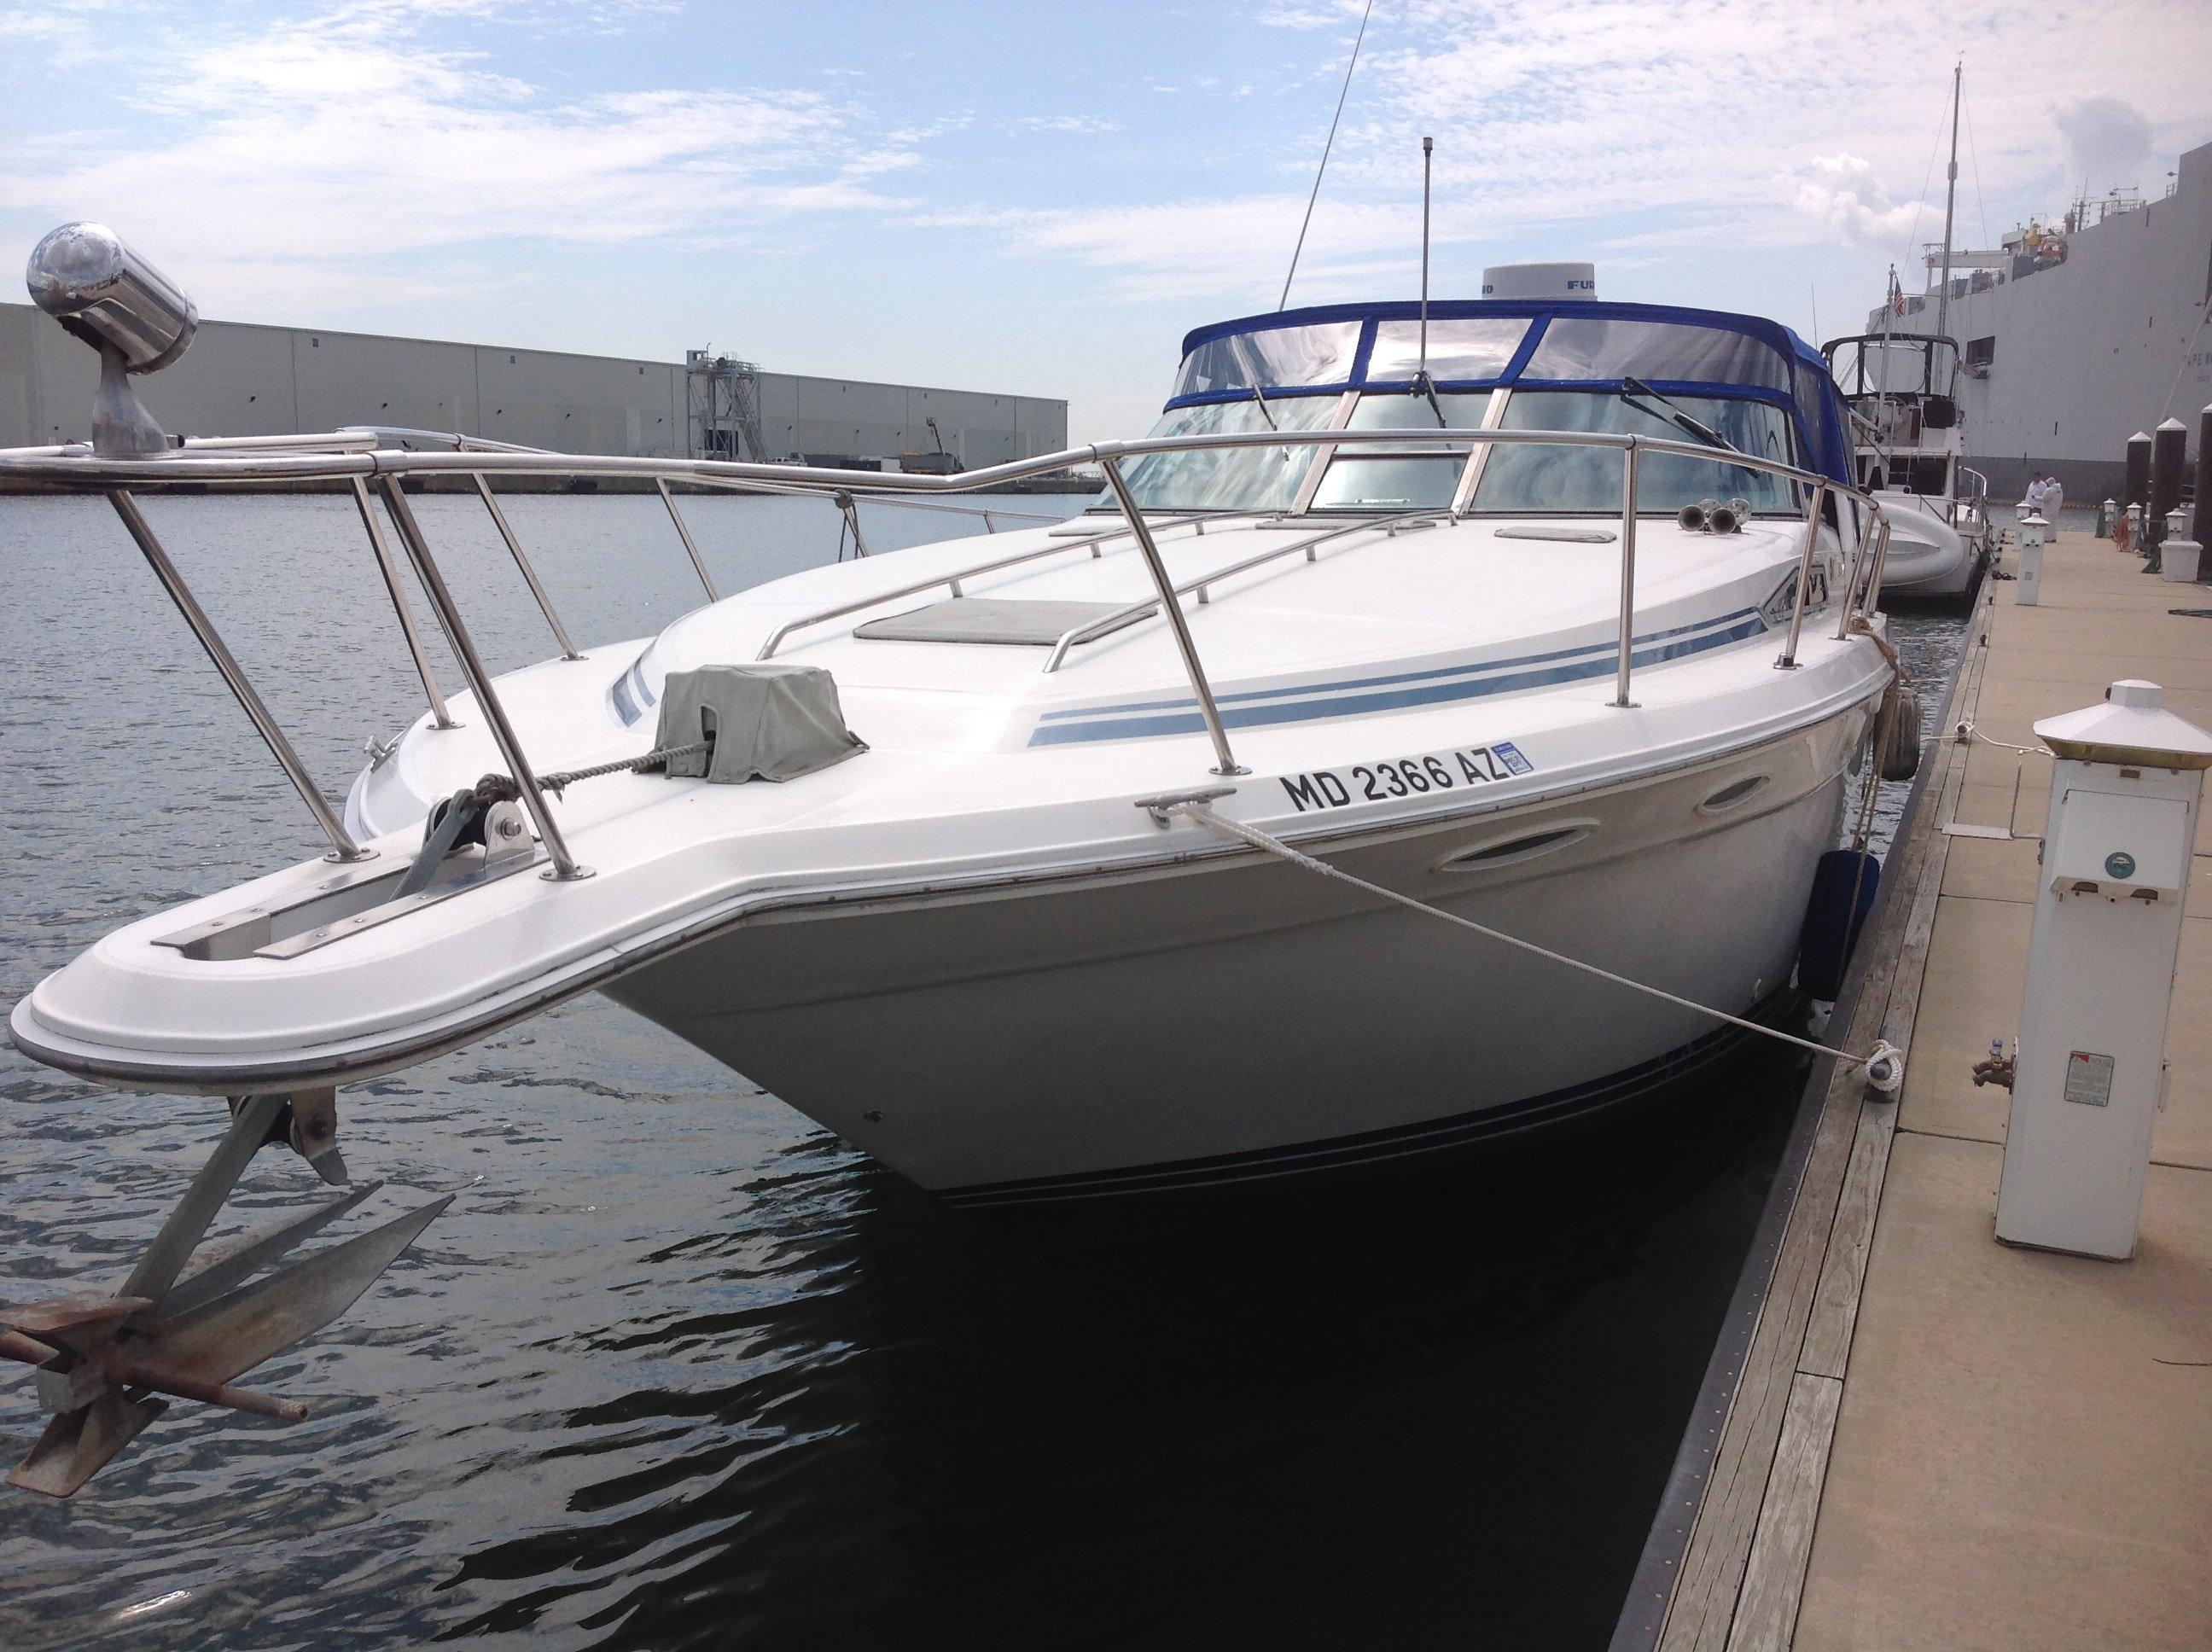 1990 Sea Ray 350 Express Cruiser Power Boat For Sale  wwwyachtworldcom